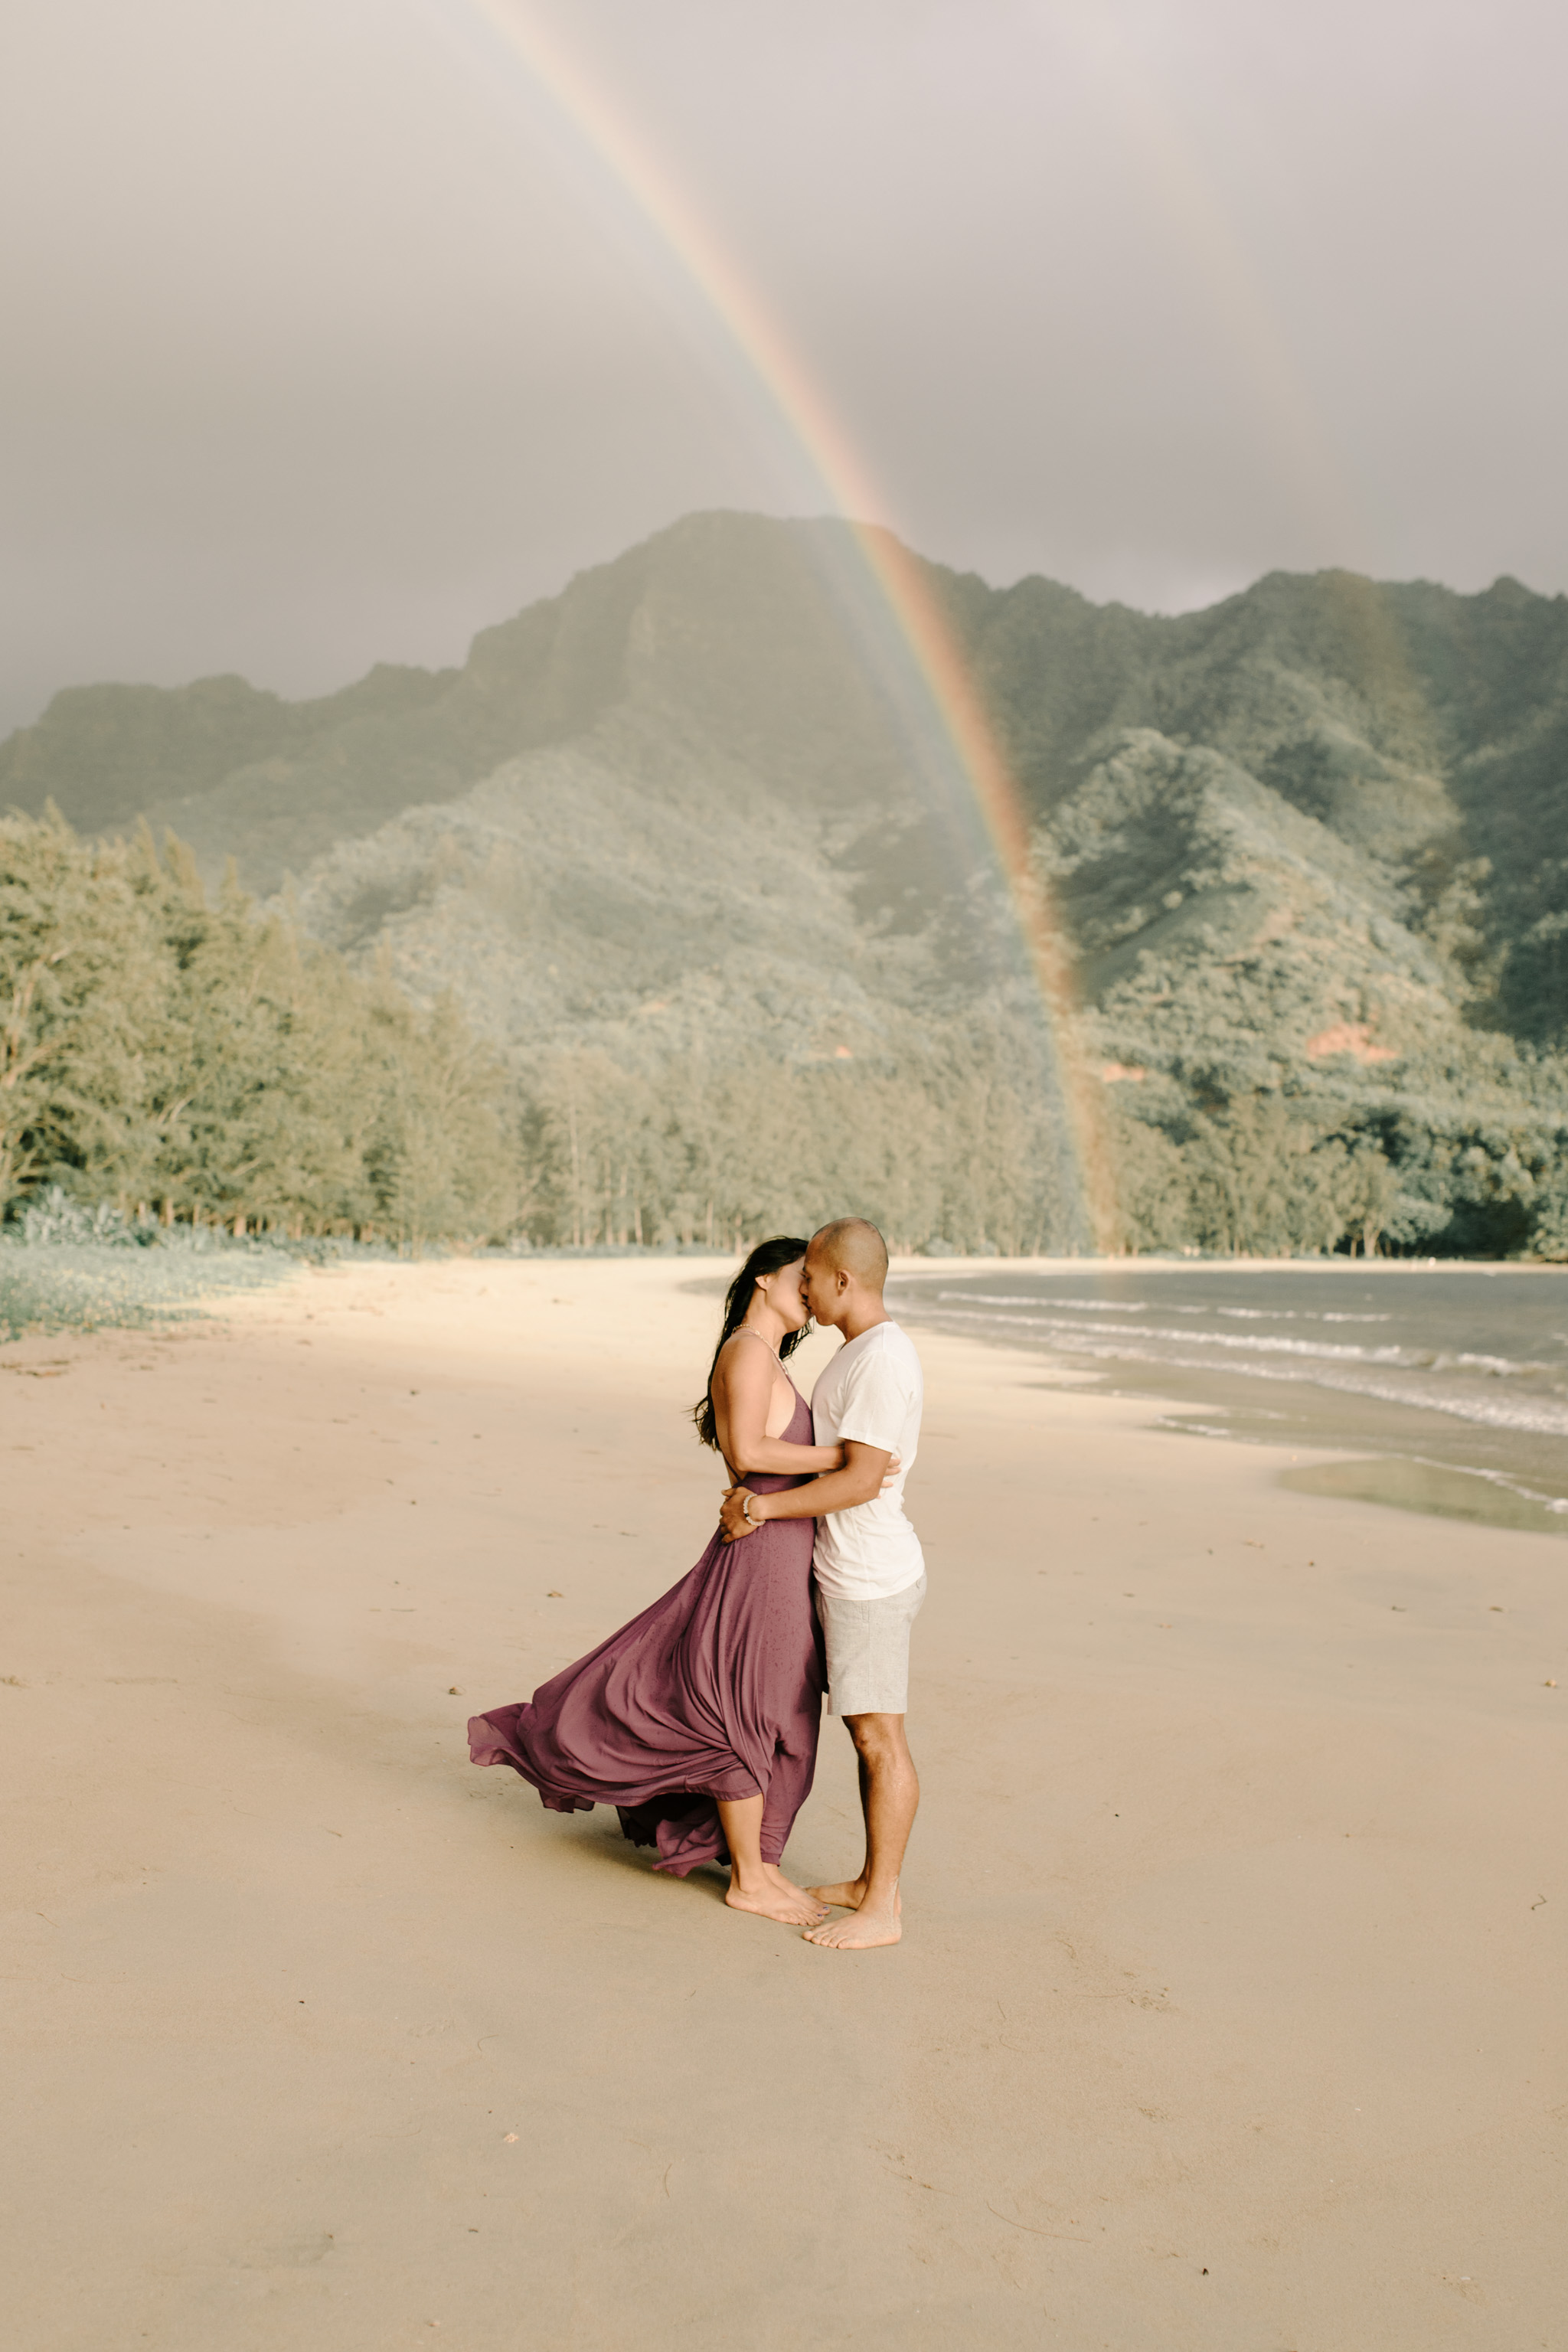 Beautiful Hawaii beach couple photos with a gorgeous rainbow in the background by Oahu couple photographer Desiree Leilani